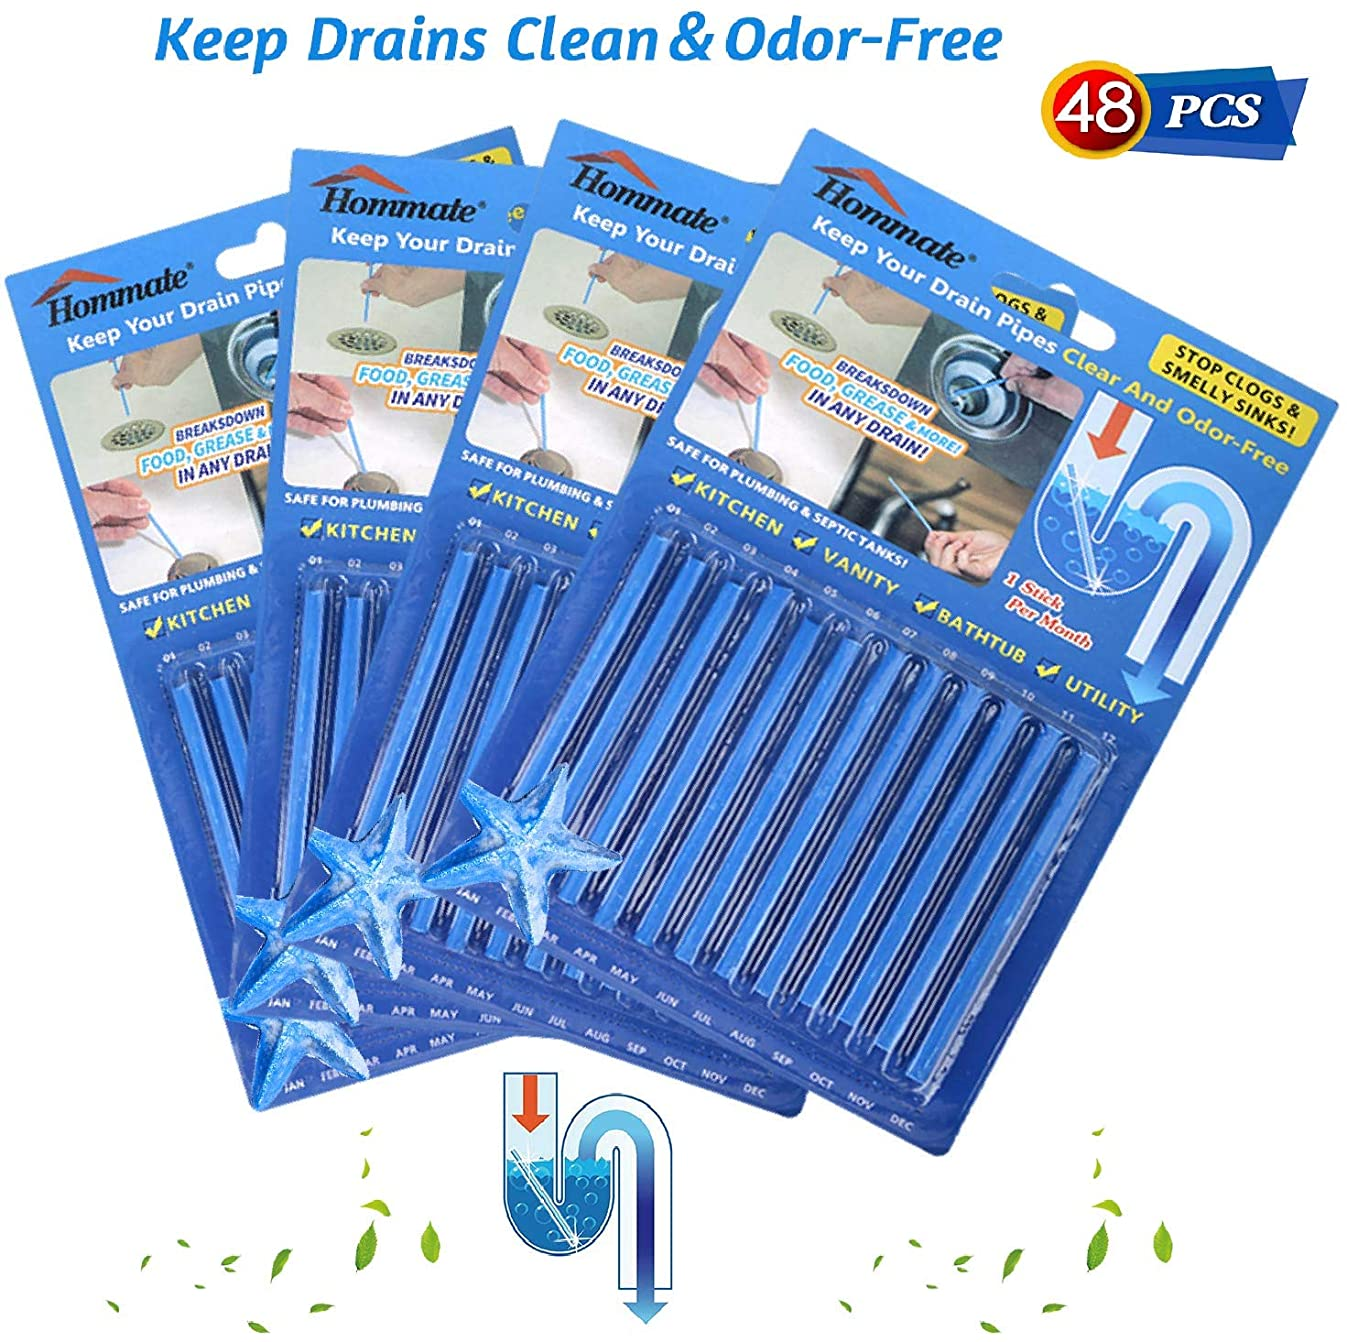 Drain Sticks Sink Sticks Drain Stix Drain Cleaner & Deodorizer Sticks for Clogged Odor Kitchen Bathroom Sinks Pipes Septic Tank Safe As Seen On TV Unscented Non-Toxic (48pcs, Blue)